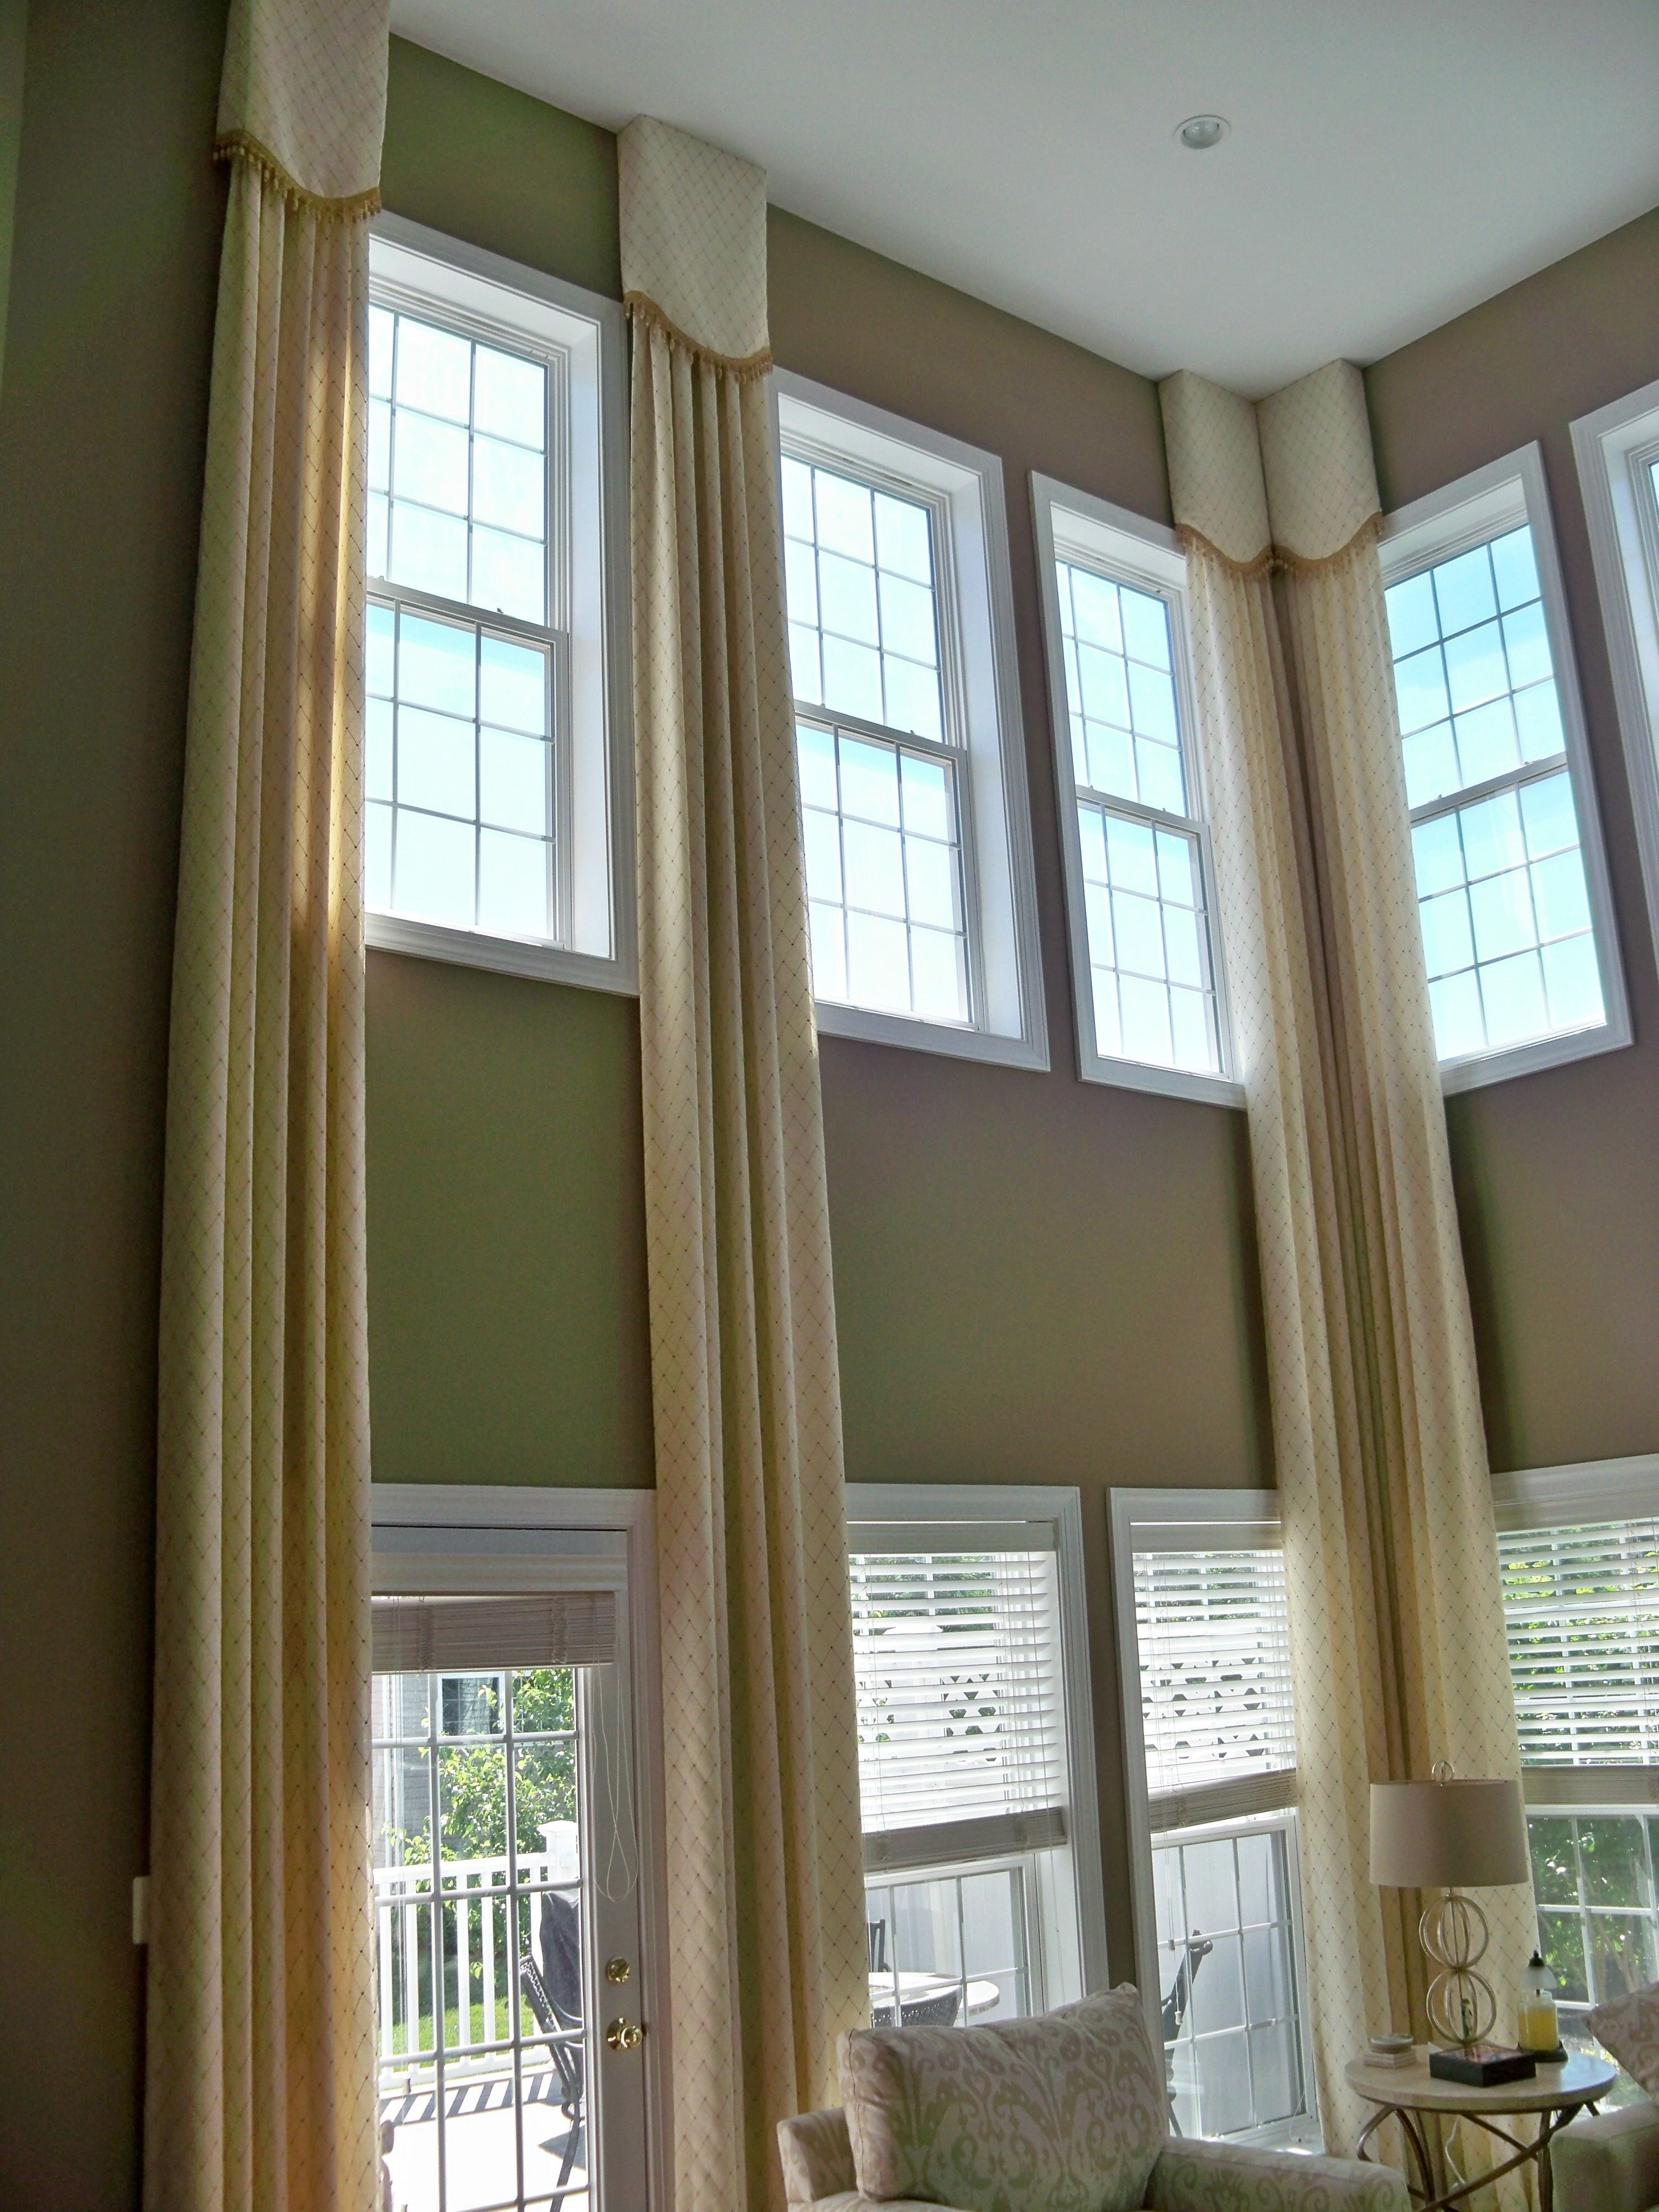 Superb Great Room Window Treatment Ideas Part - 8: Elegant Stationary Panels Custom Designed For A Great Room With Two Story  Windows Dresses The Windows